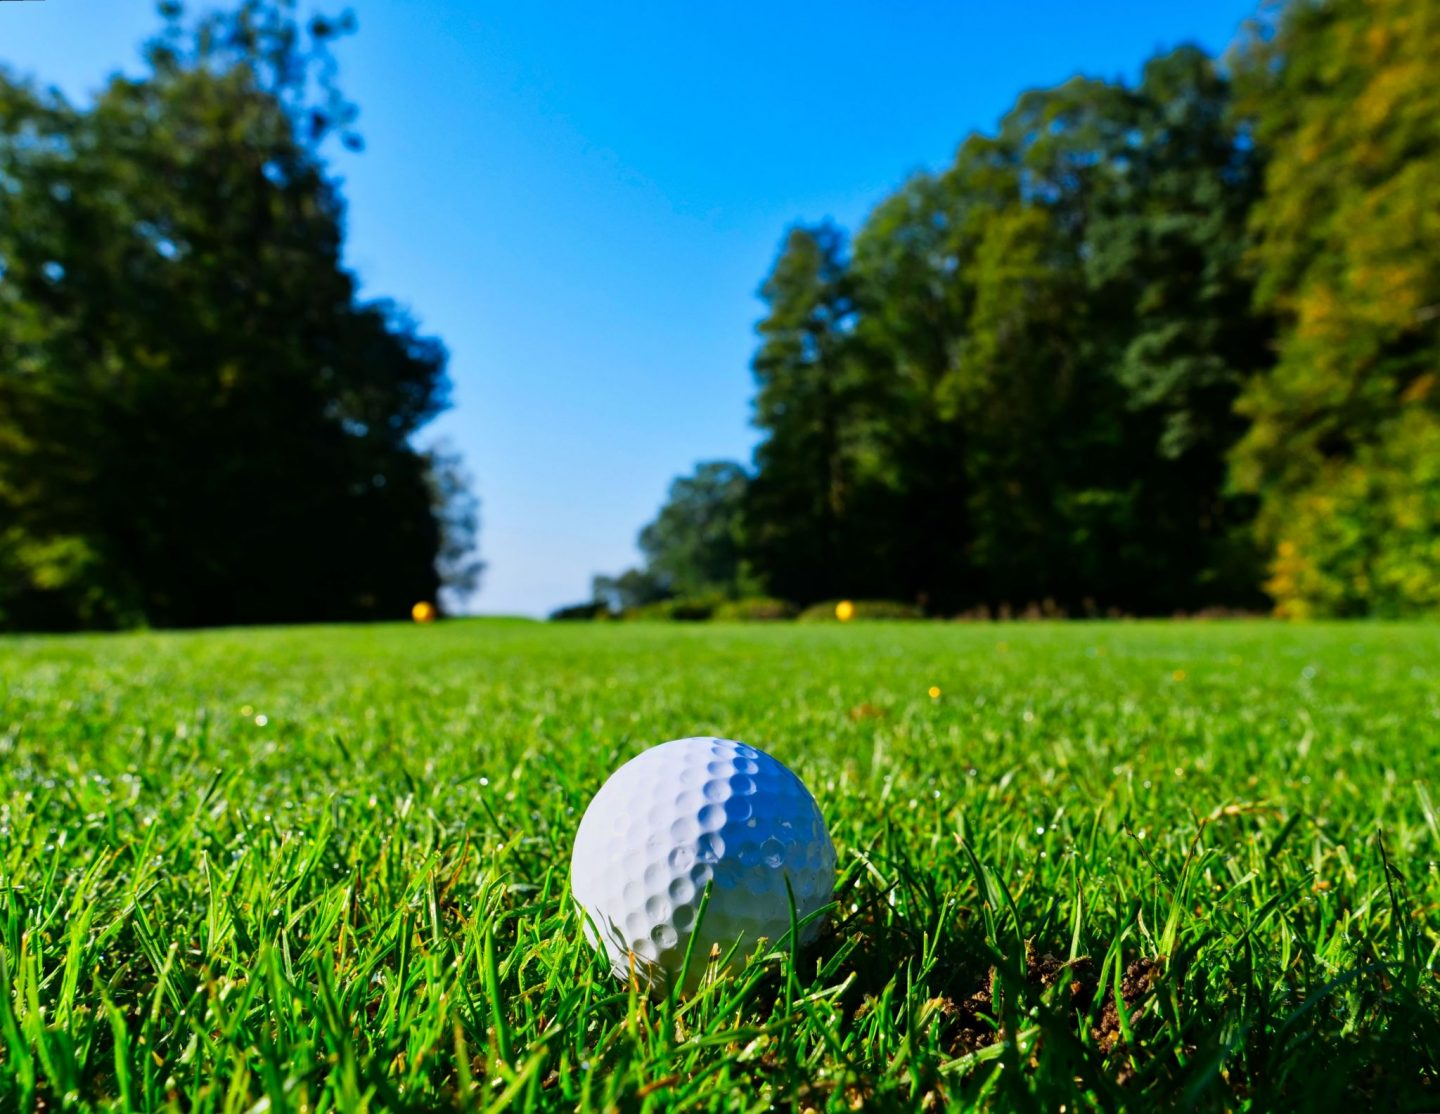 GOLF 101: PLAYING TO REACH A BETTER YOU